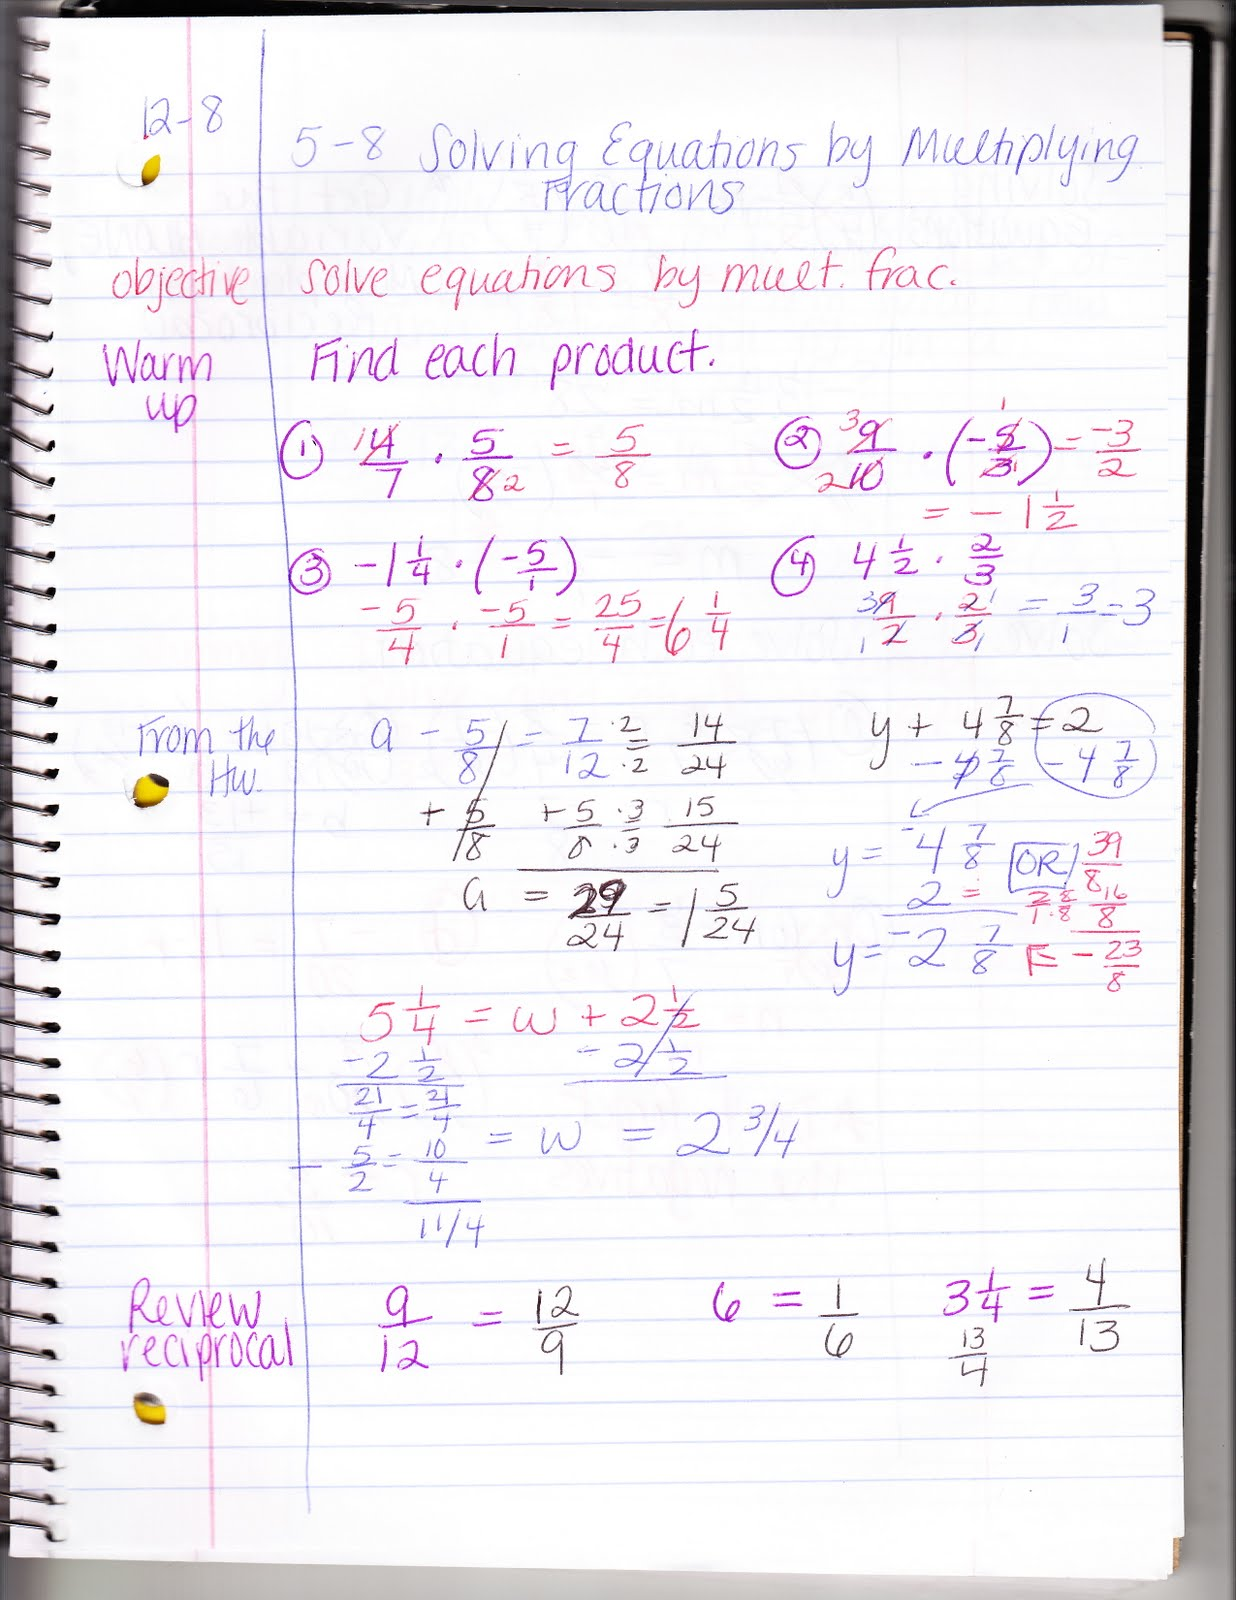 Ms Jean S Classroom Blog 5 8 Solving Equations By